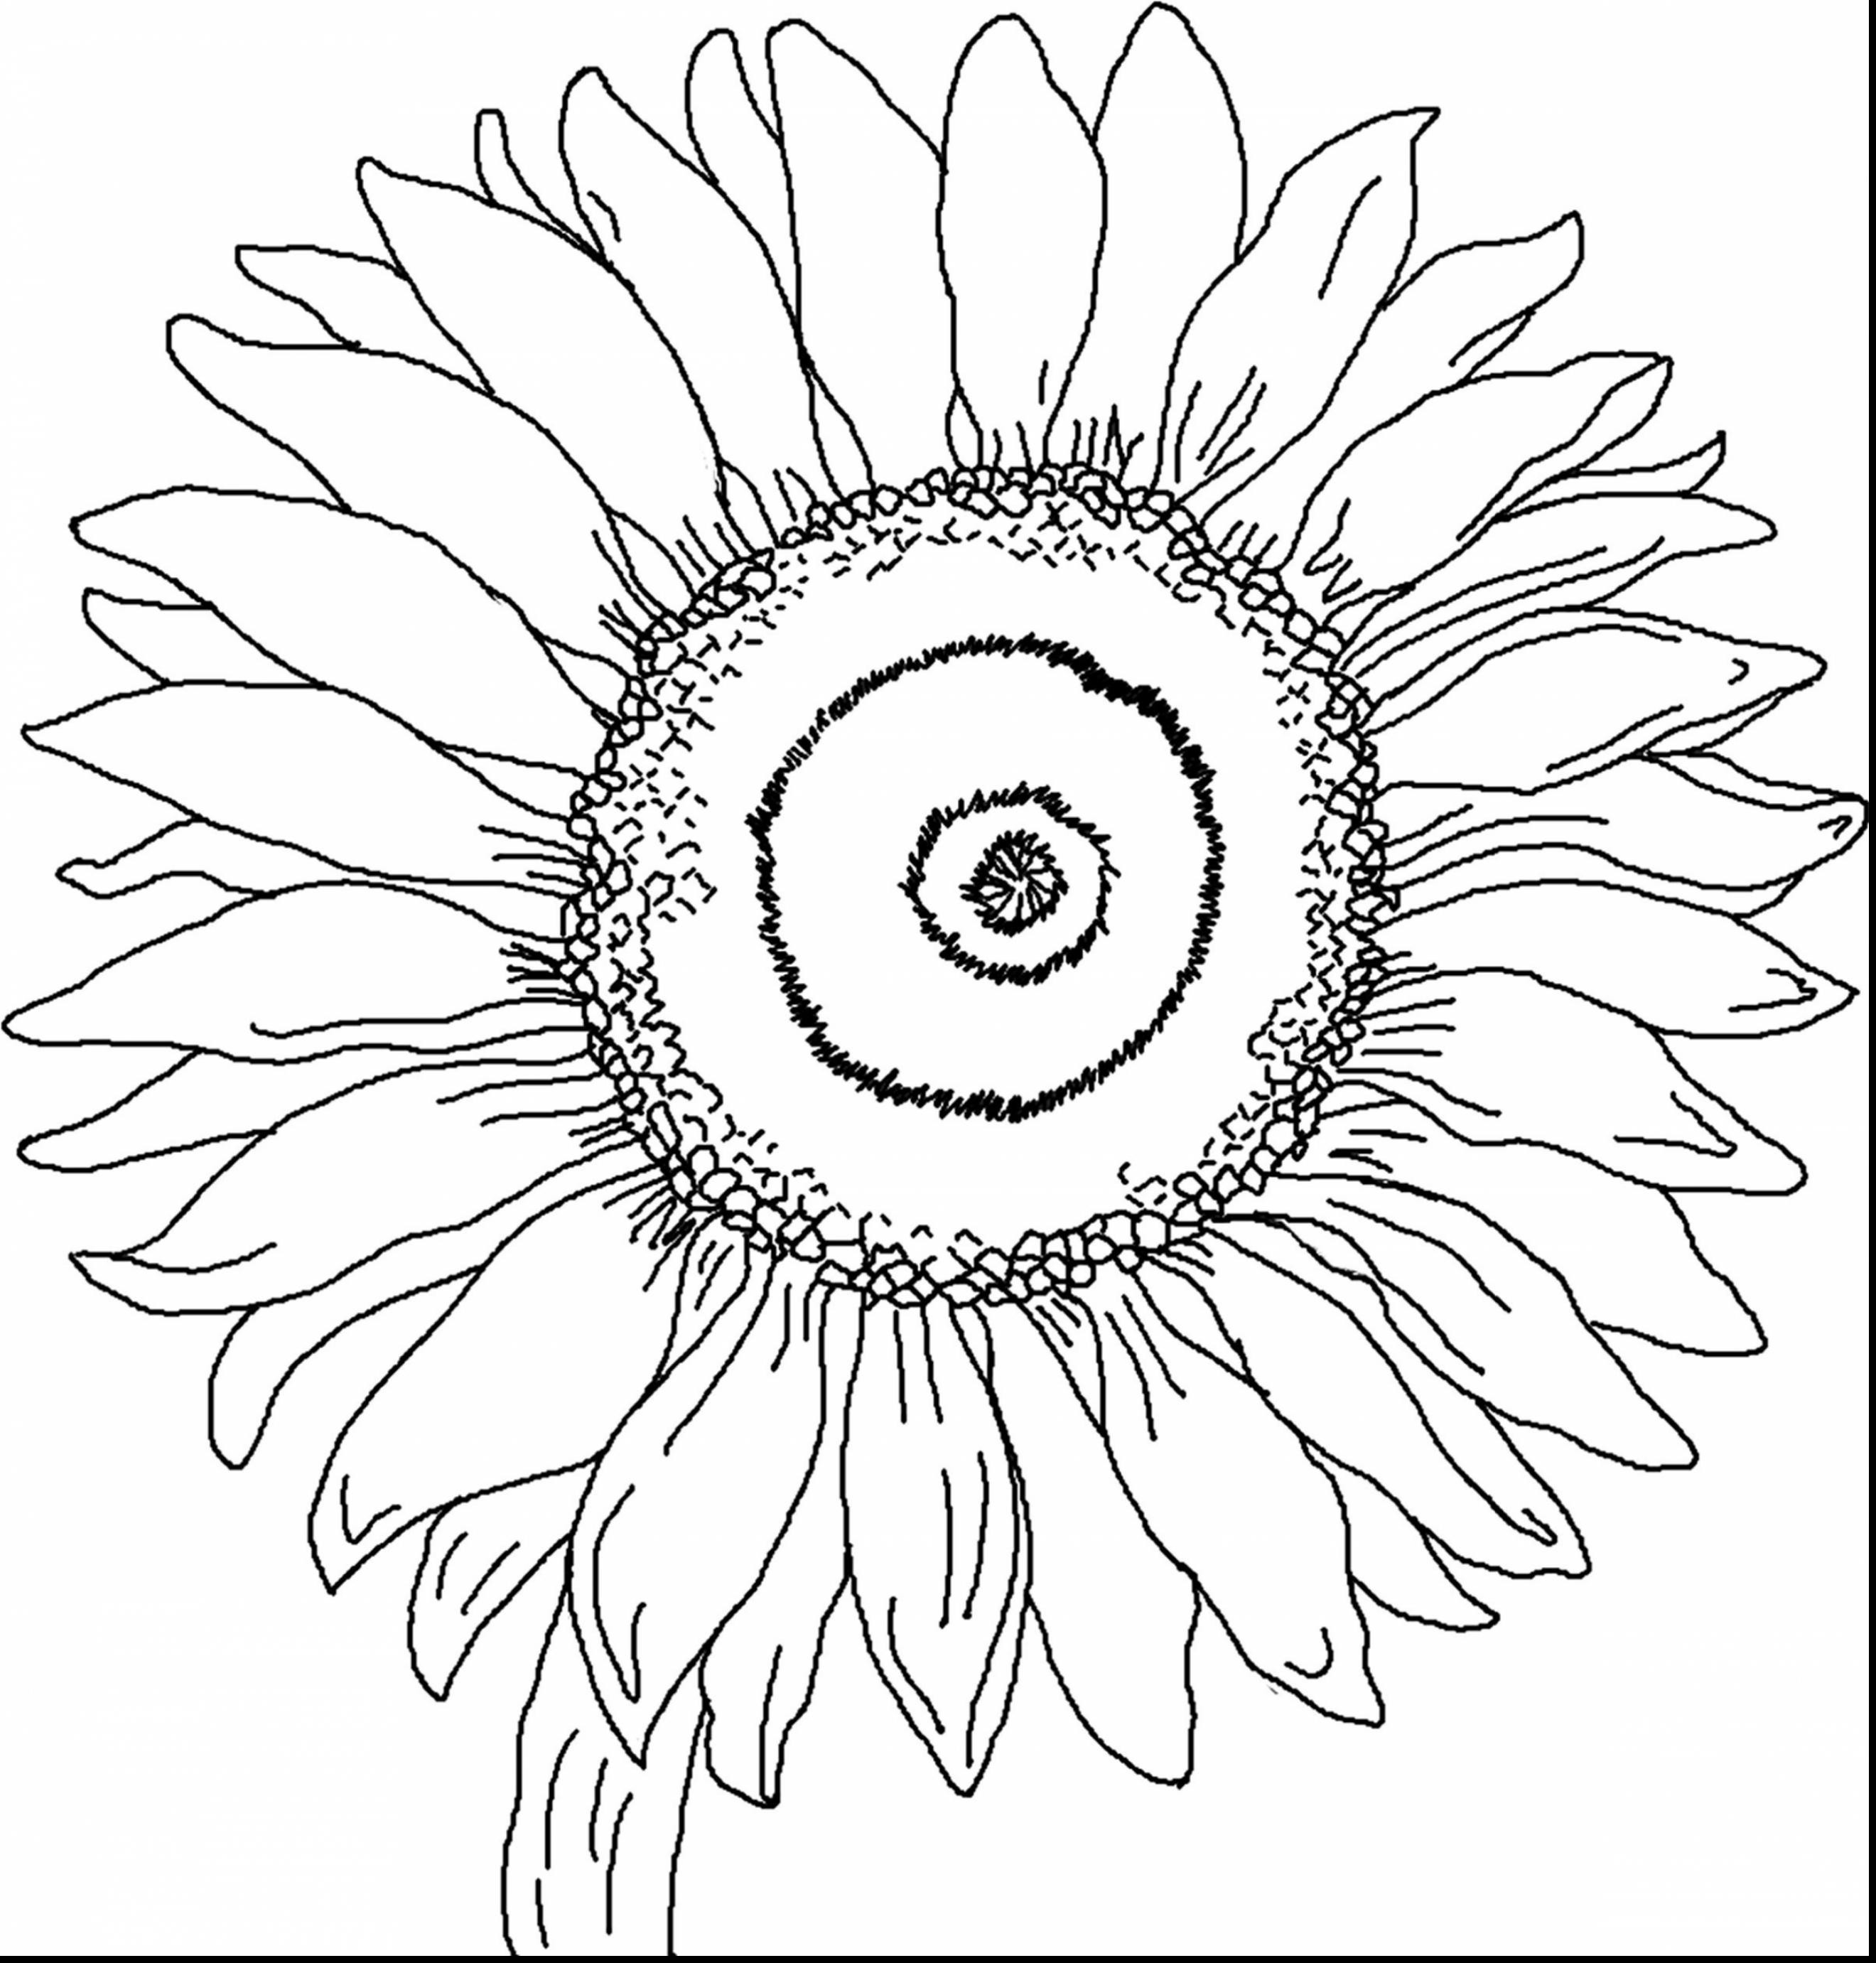 van gogh vase of sunflowers of van gogh sunflowers coloring page 2787748 pertaining to astounding sunflower coloring page with van gogh coloring pages